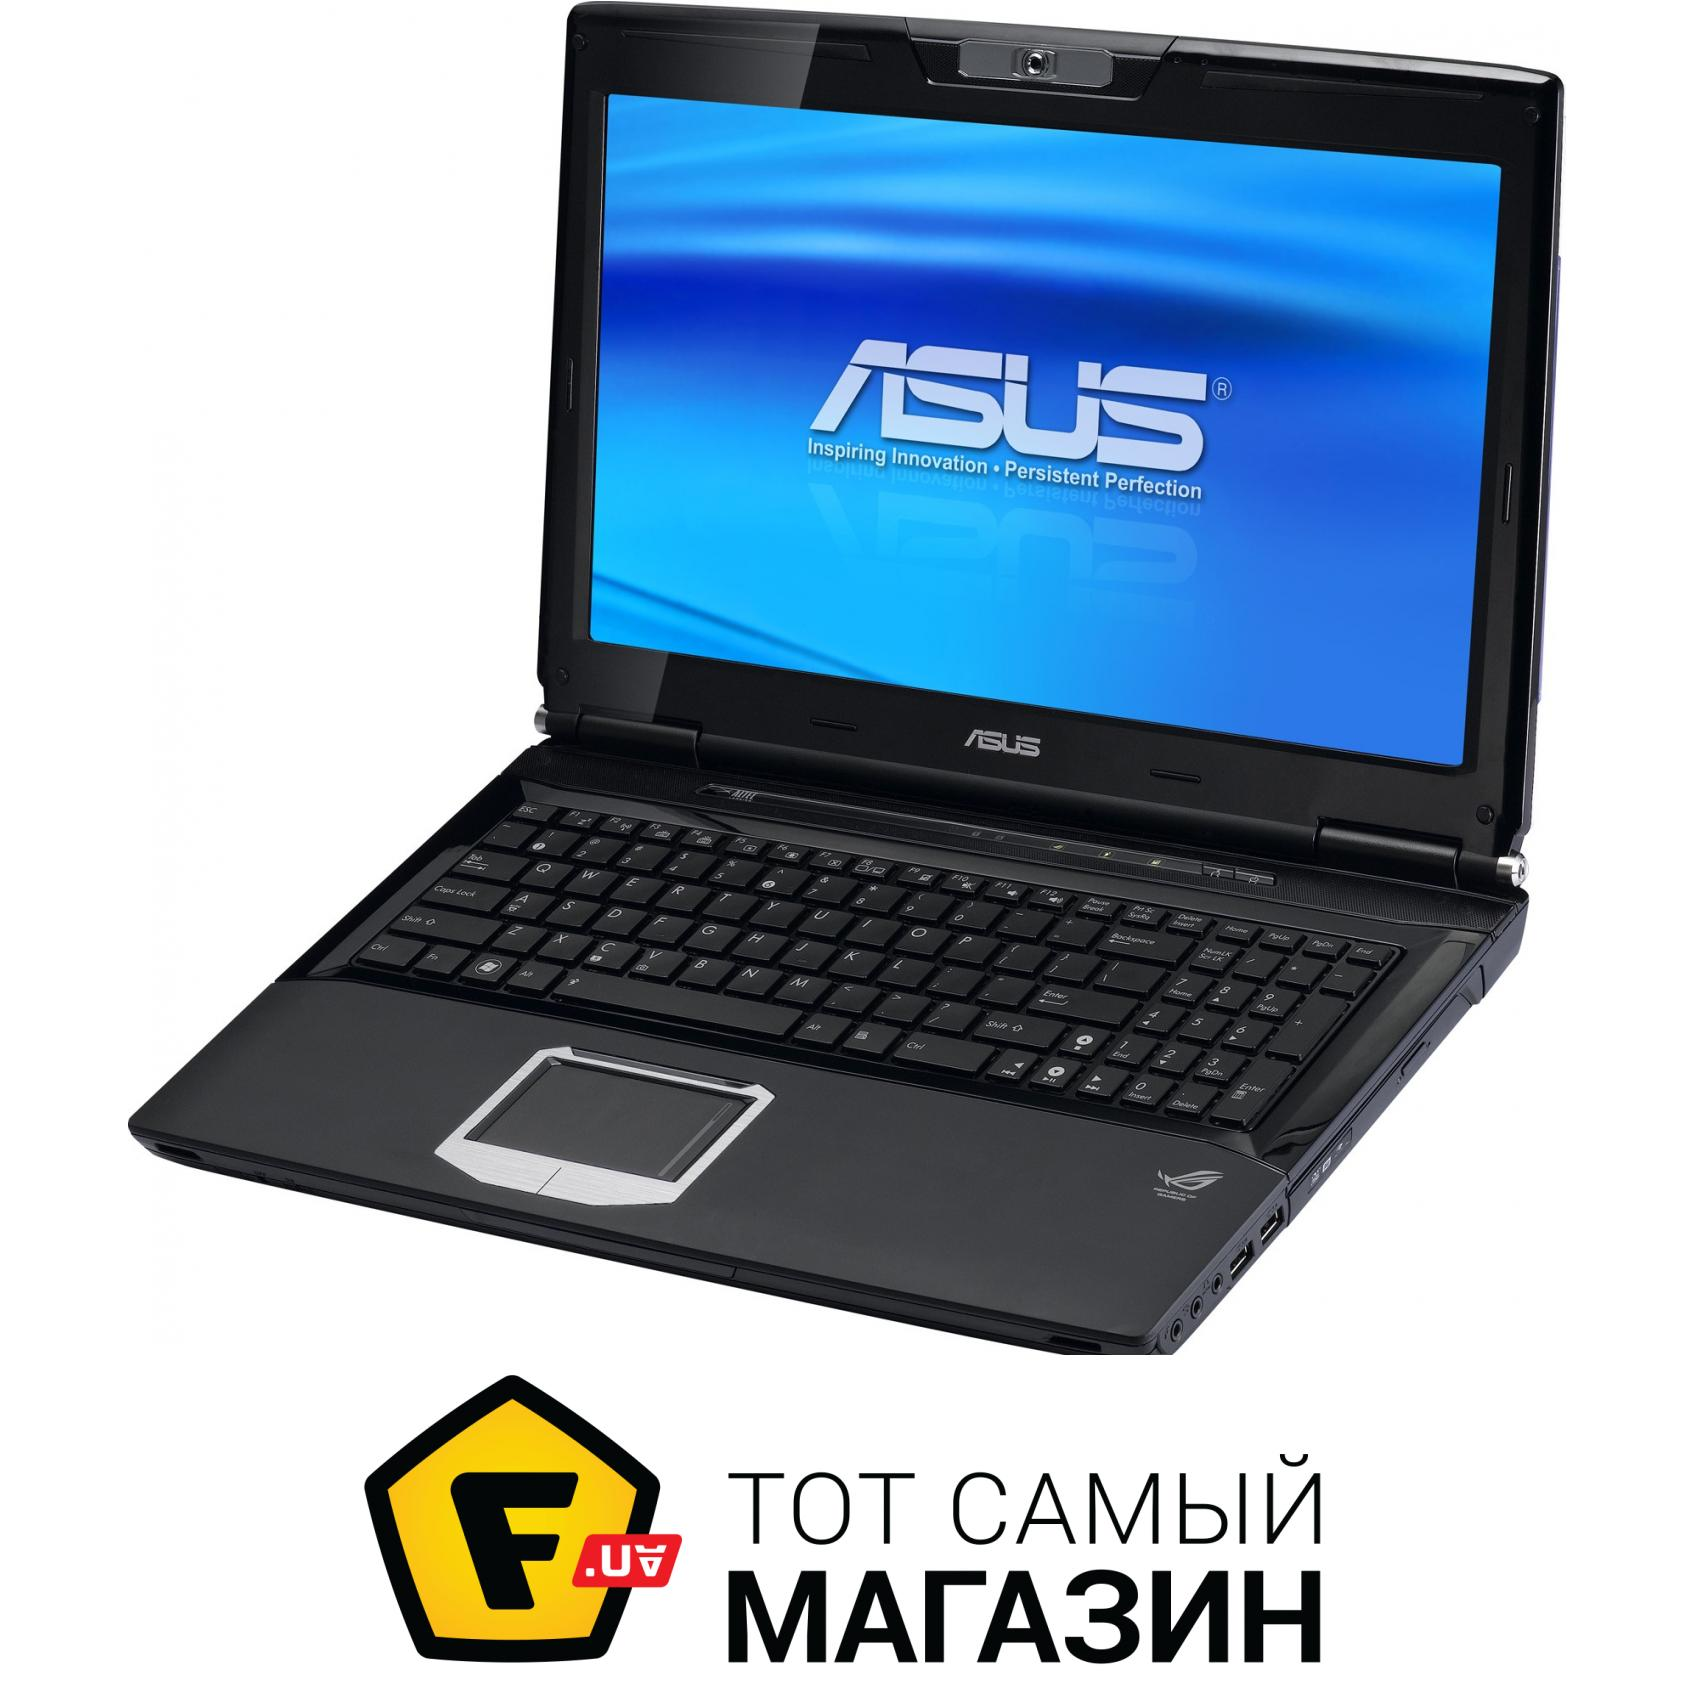 ASUS G51J POWER4GEAR HYBRID DRIVER FOR WINDOWS 8